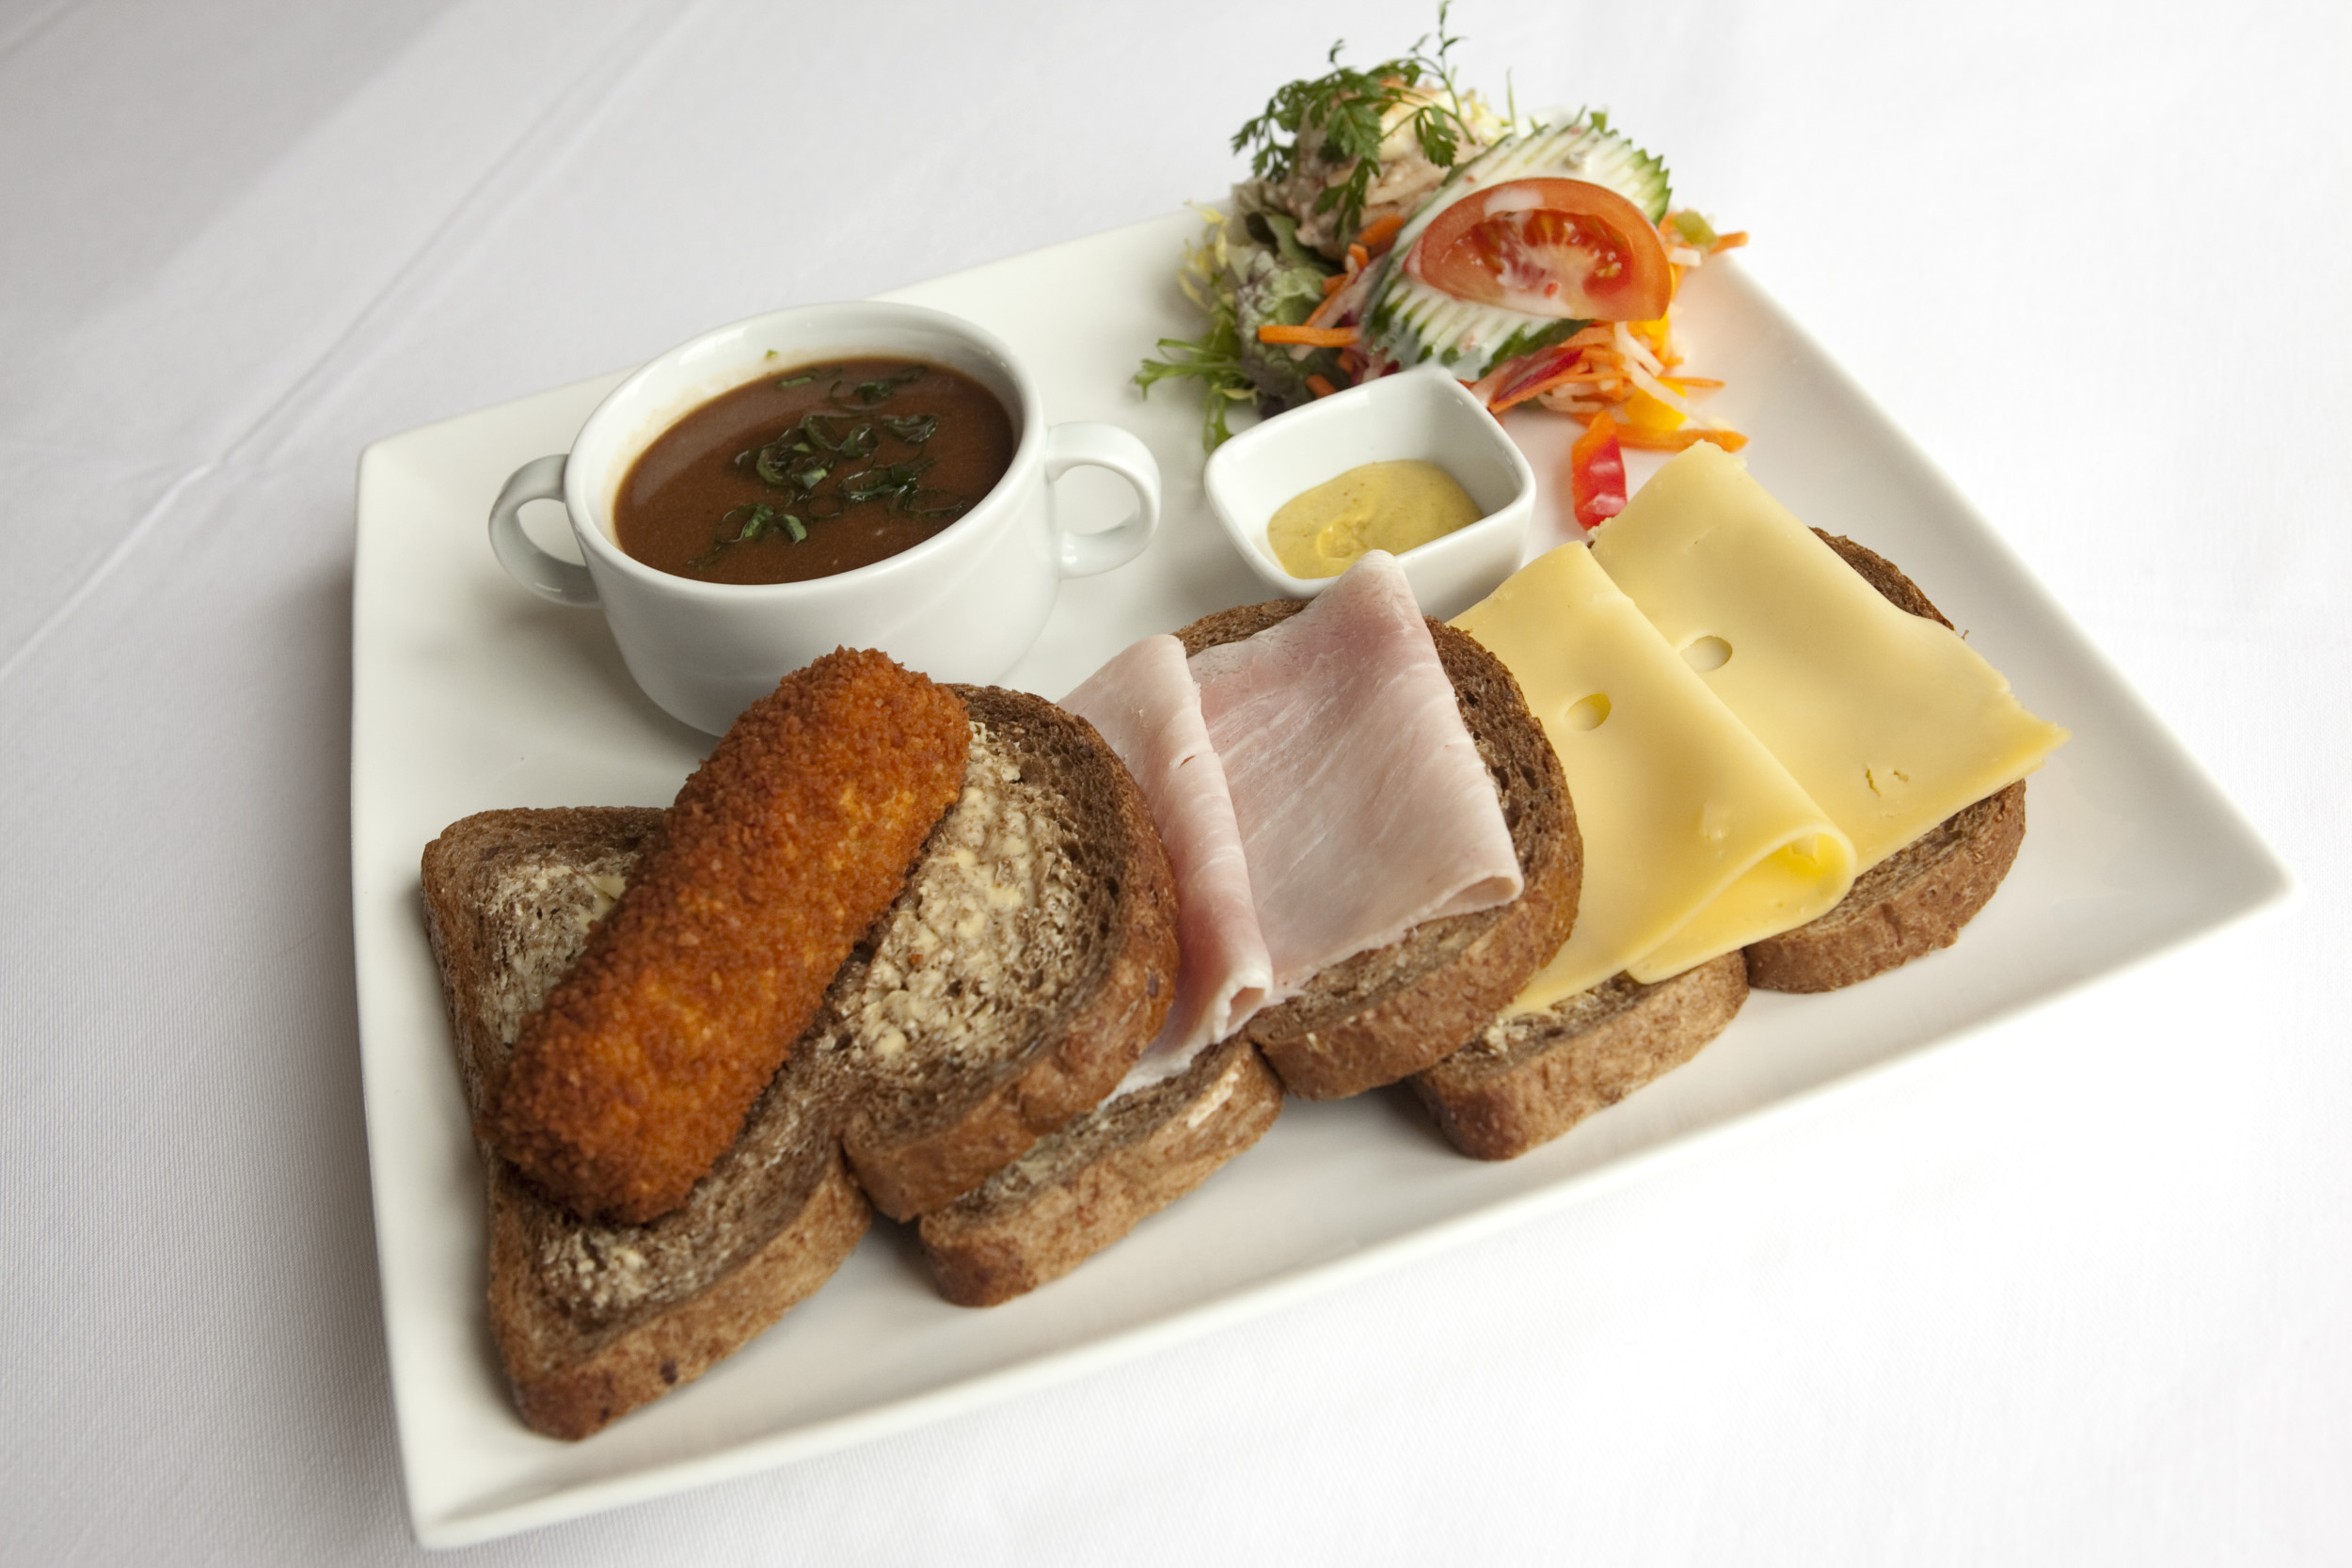 lunch twaalfuurtje brood bread kroket ham kaas cheese soep soup mosterd salade